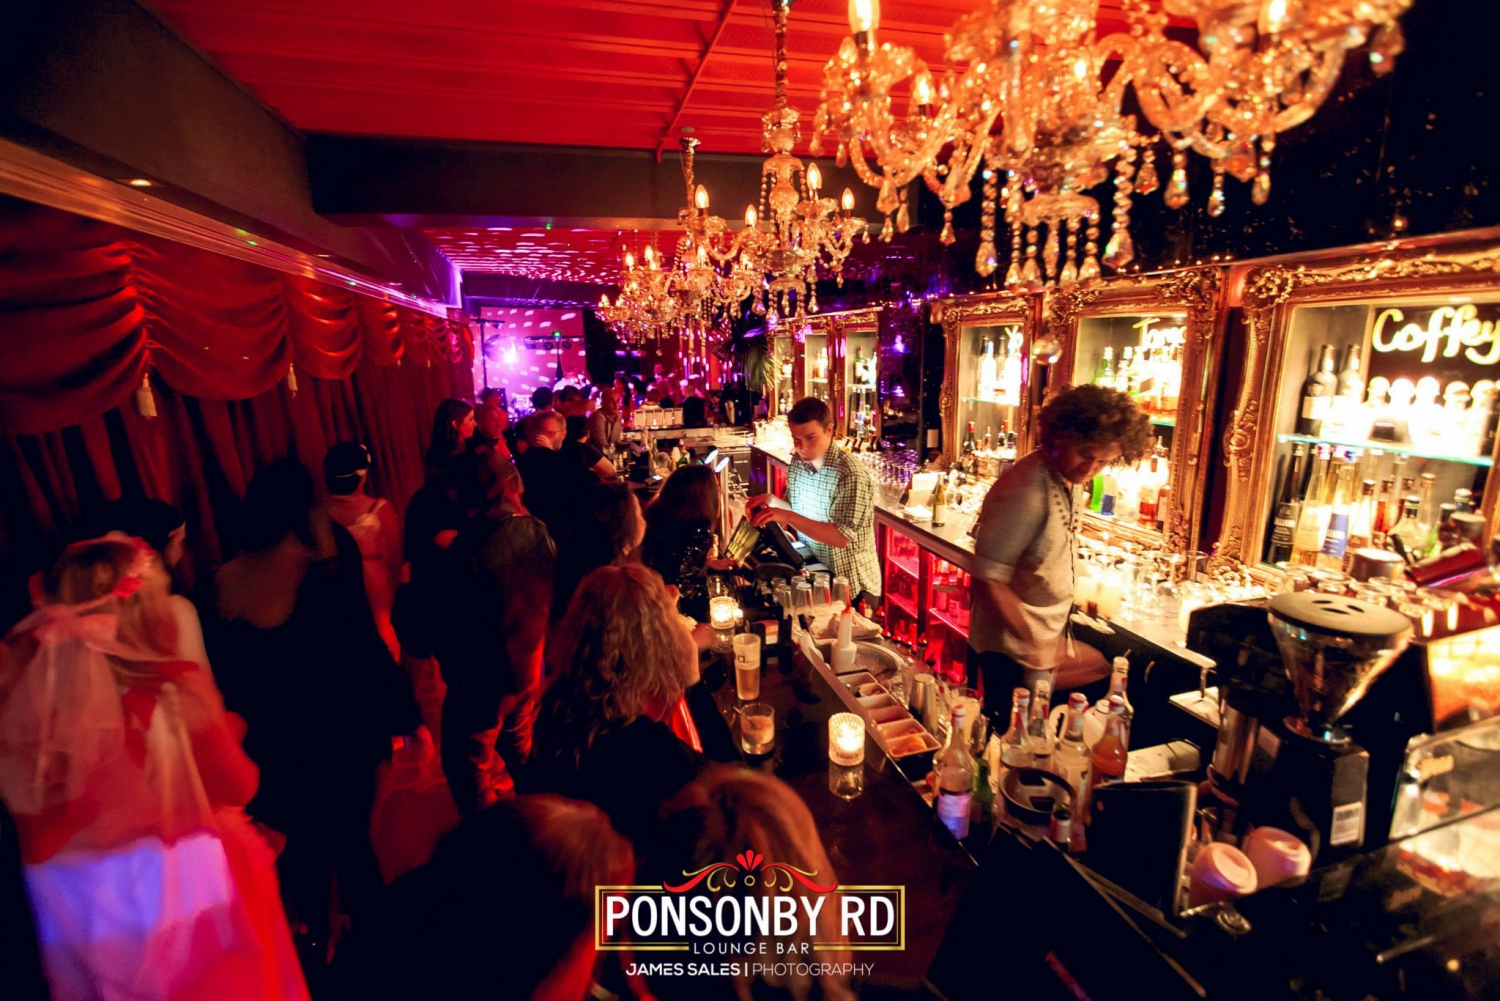 Ponsonby Road Lounge Bar